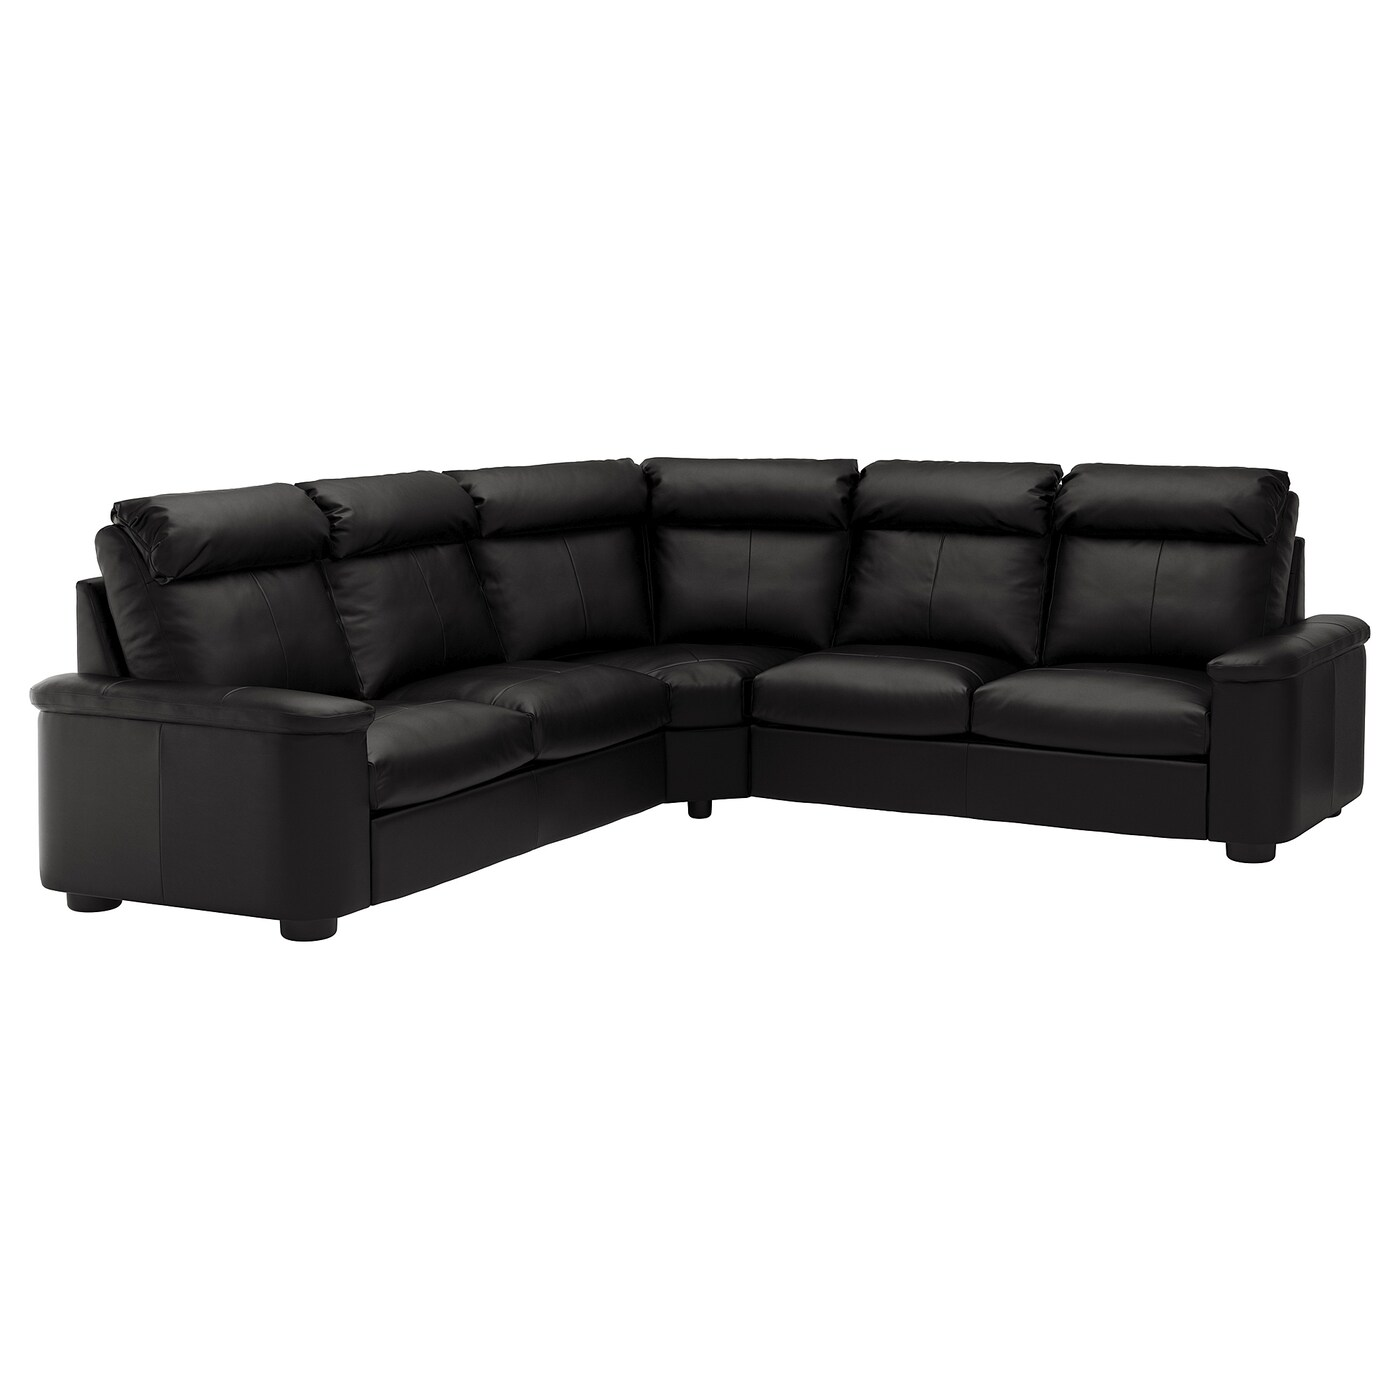 Sofabetten Ikea Corner Sofa Beds Futons Chair Beds Ikea